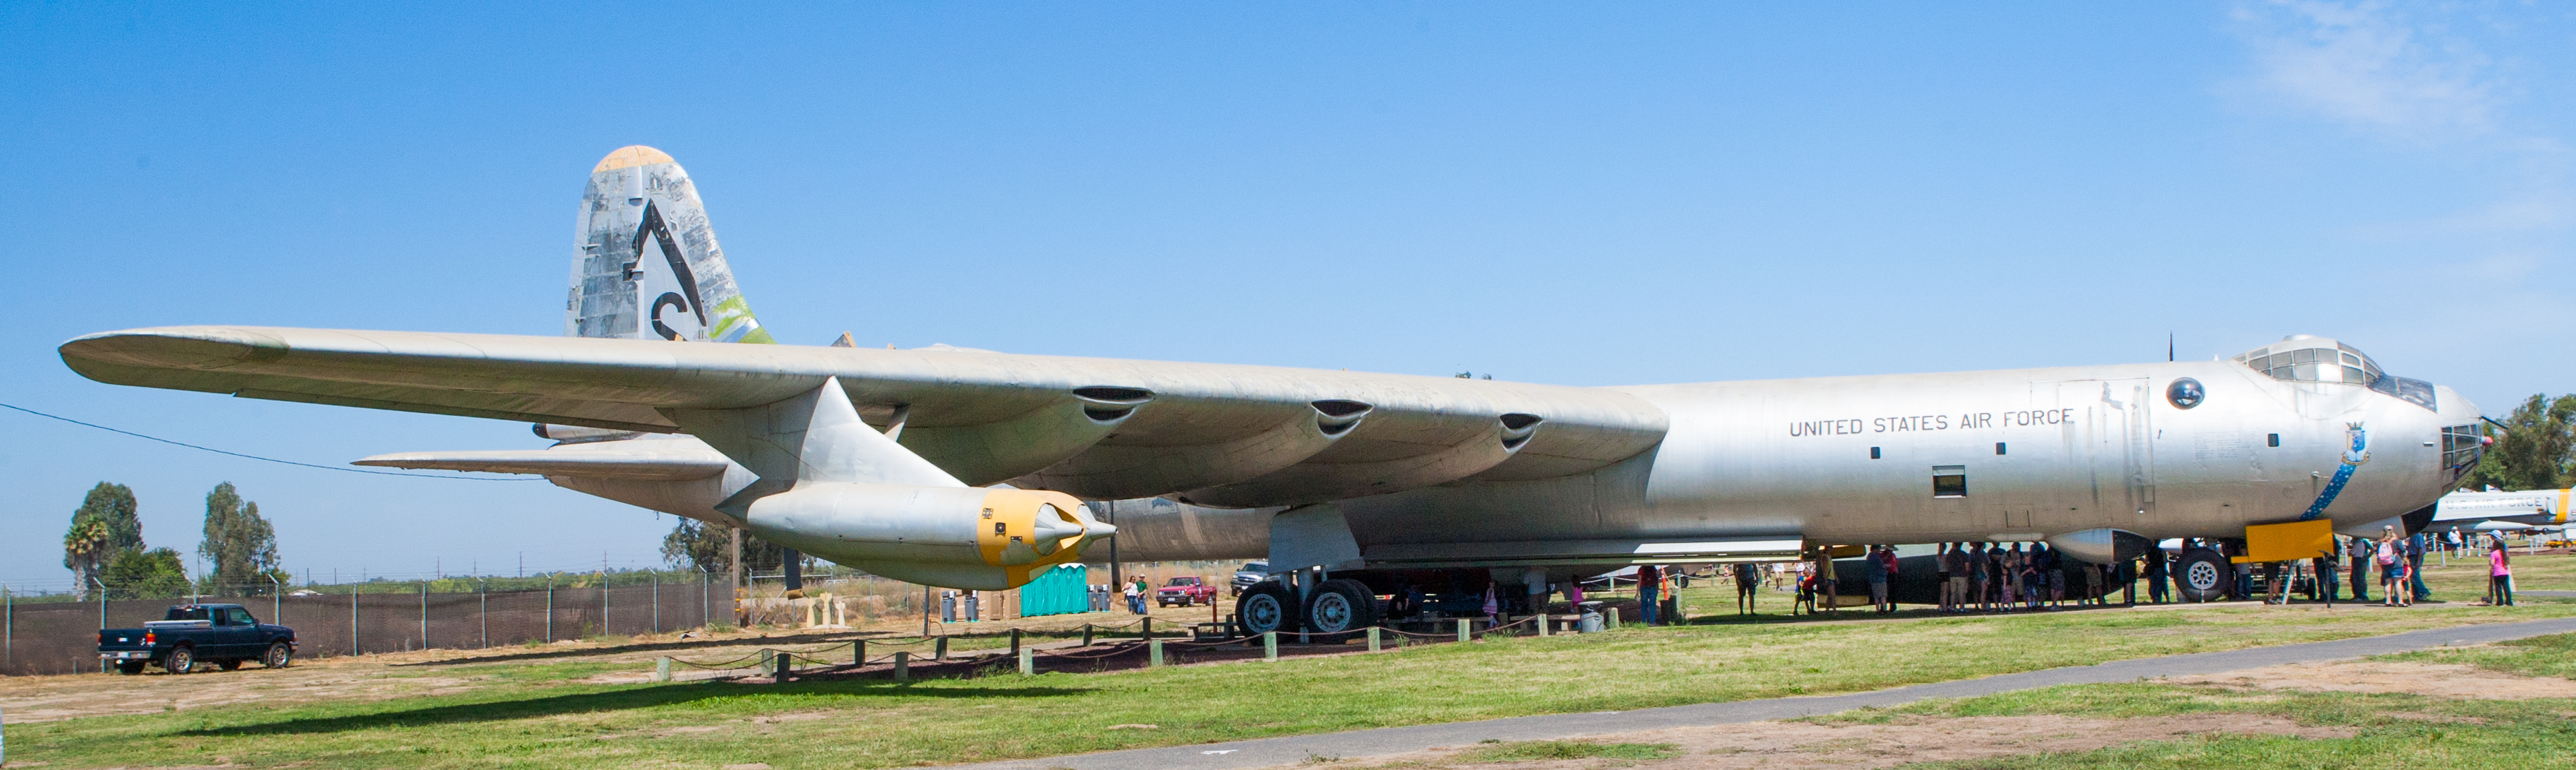 RB-36H_located_at_Castle_Air_Museum_in_Atwater%2C_CA.jpg